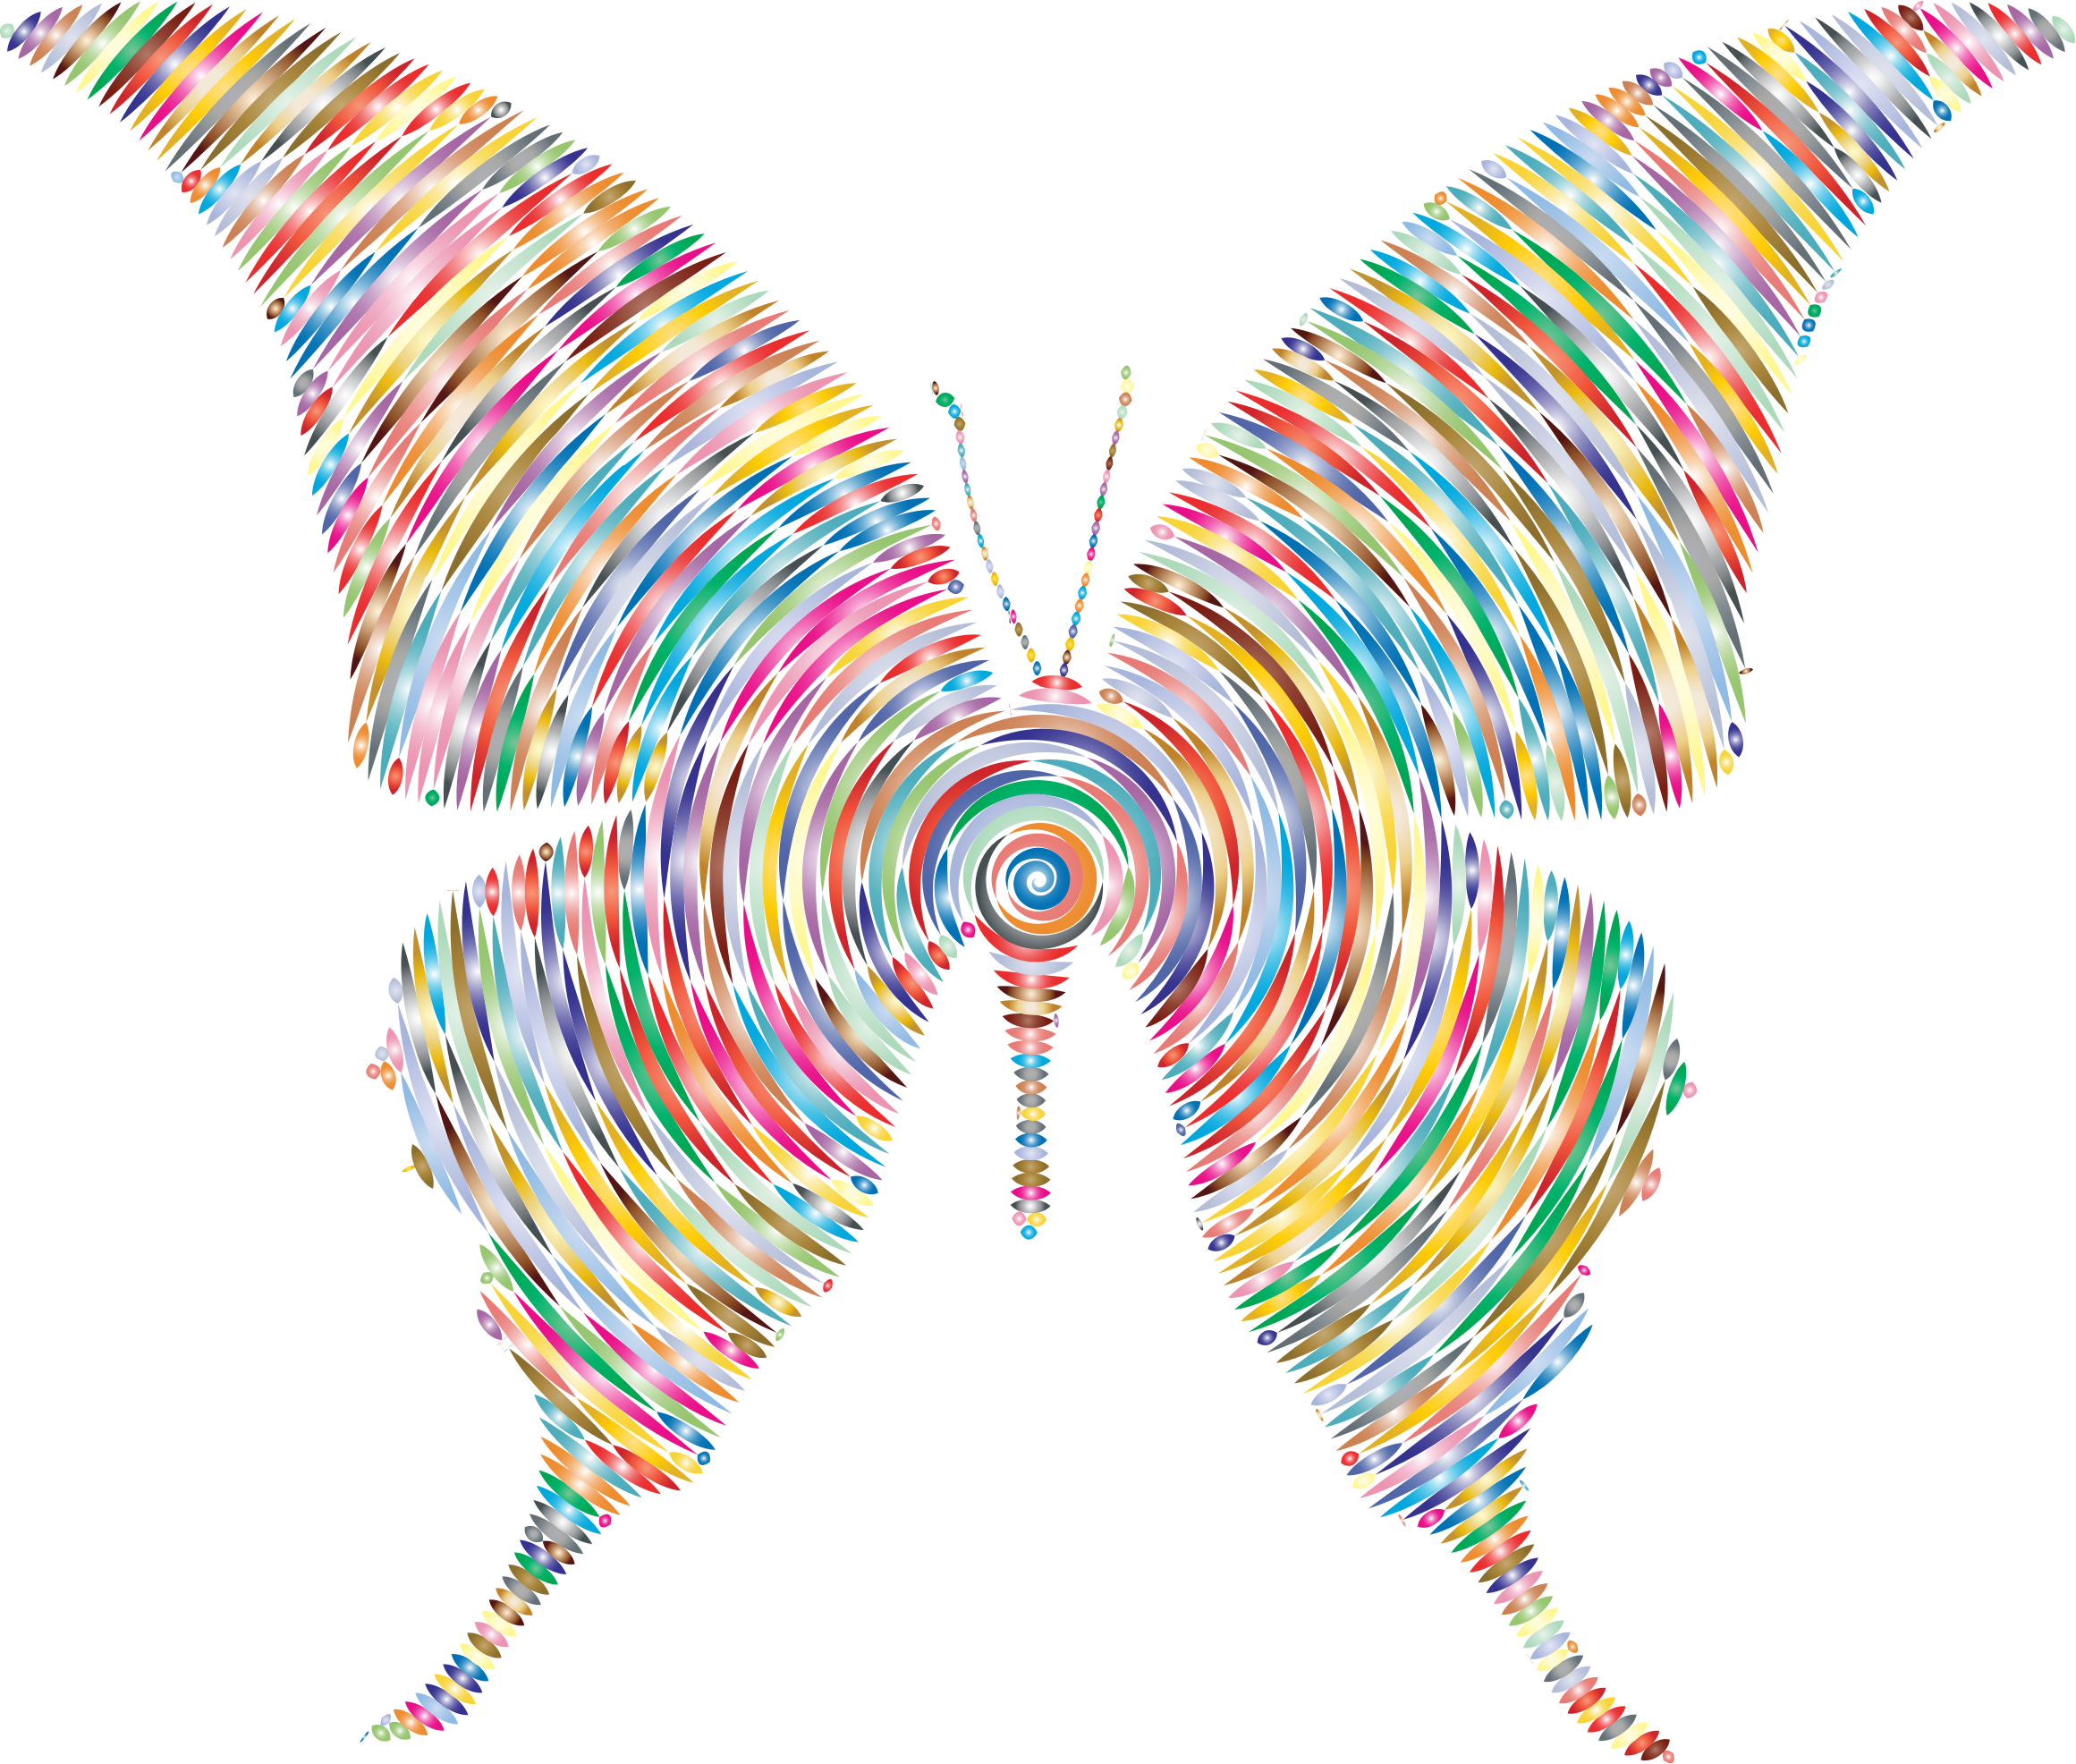 Prismatic Butterfly Silhouette 6 Concentric 3 by GDJ